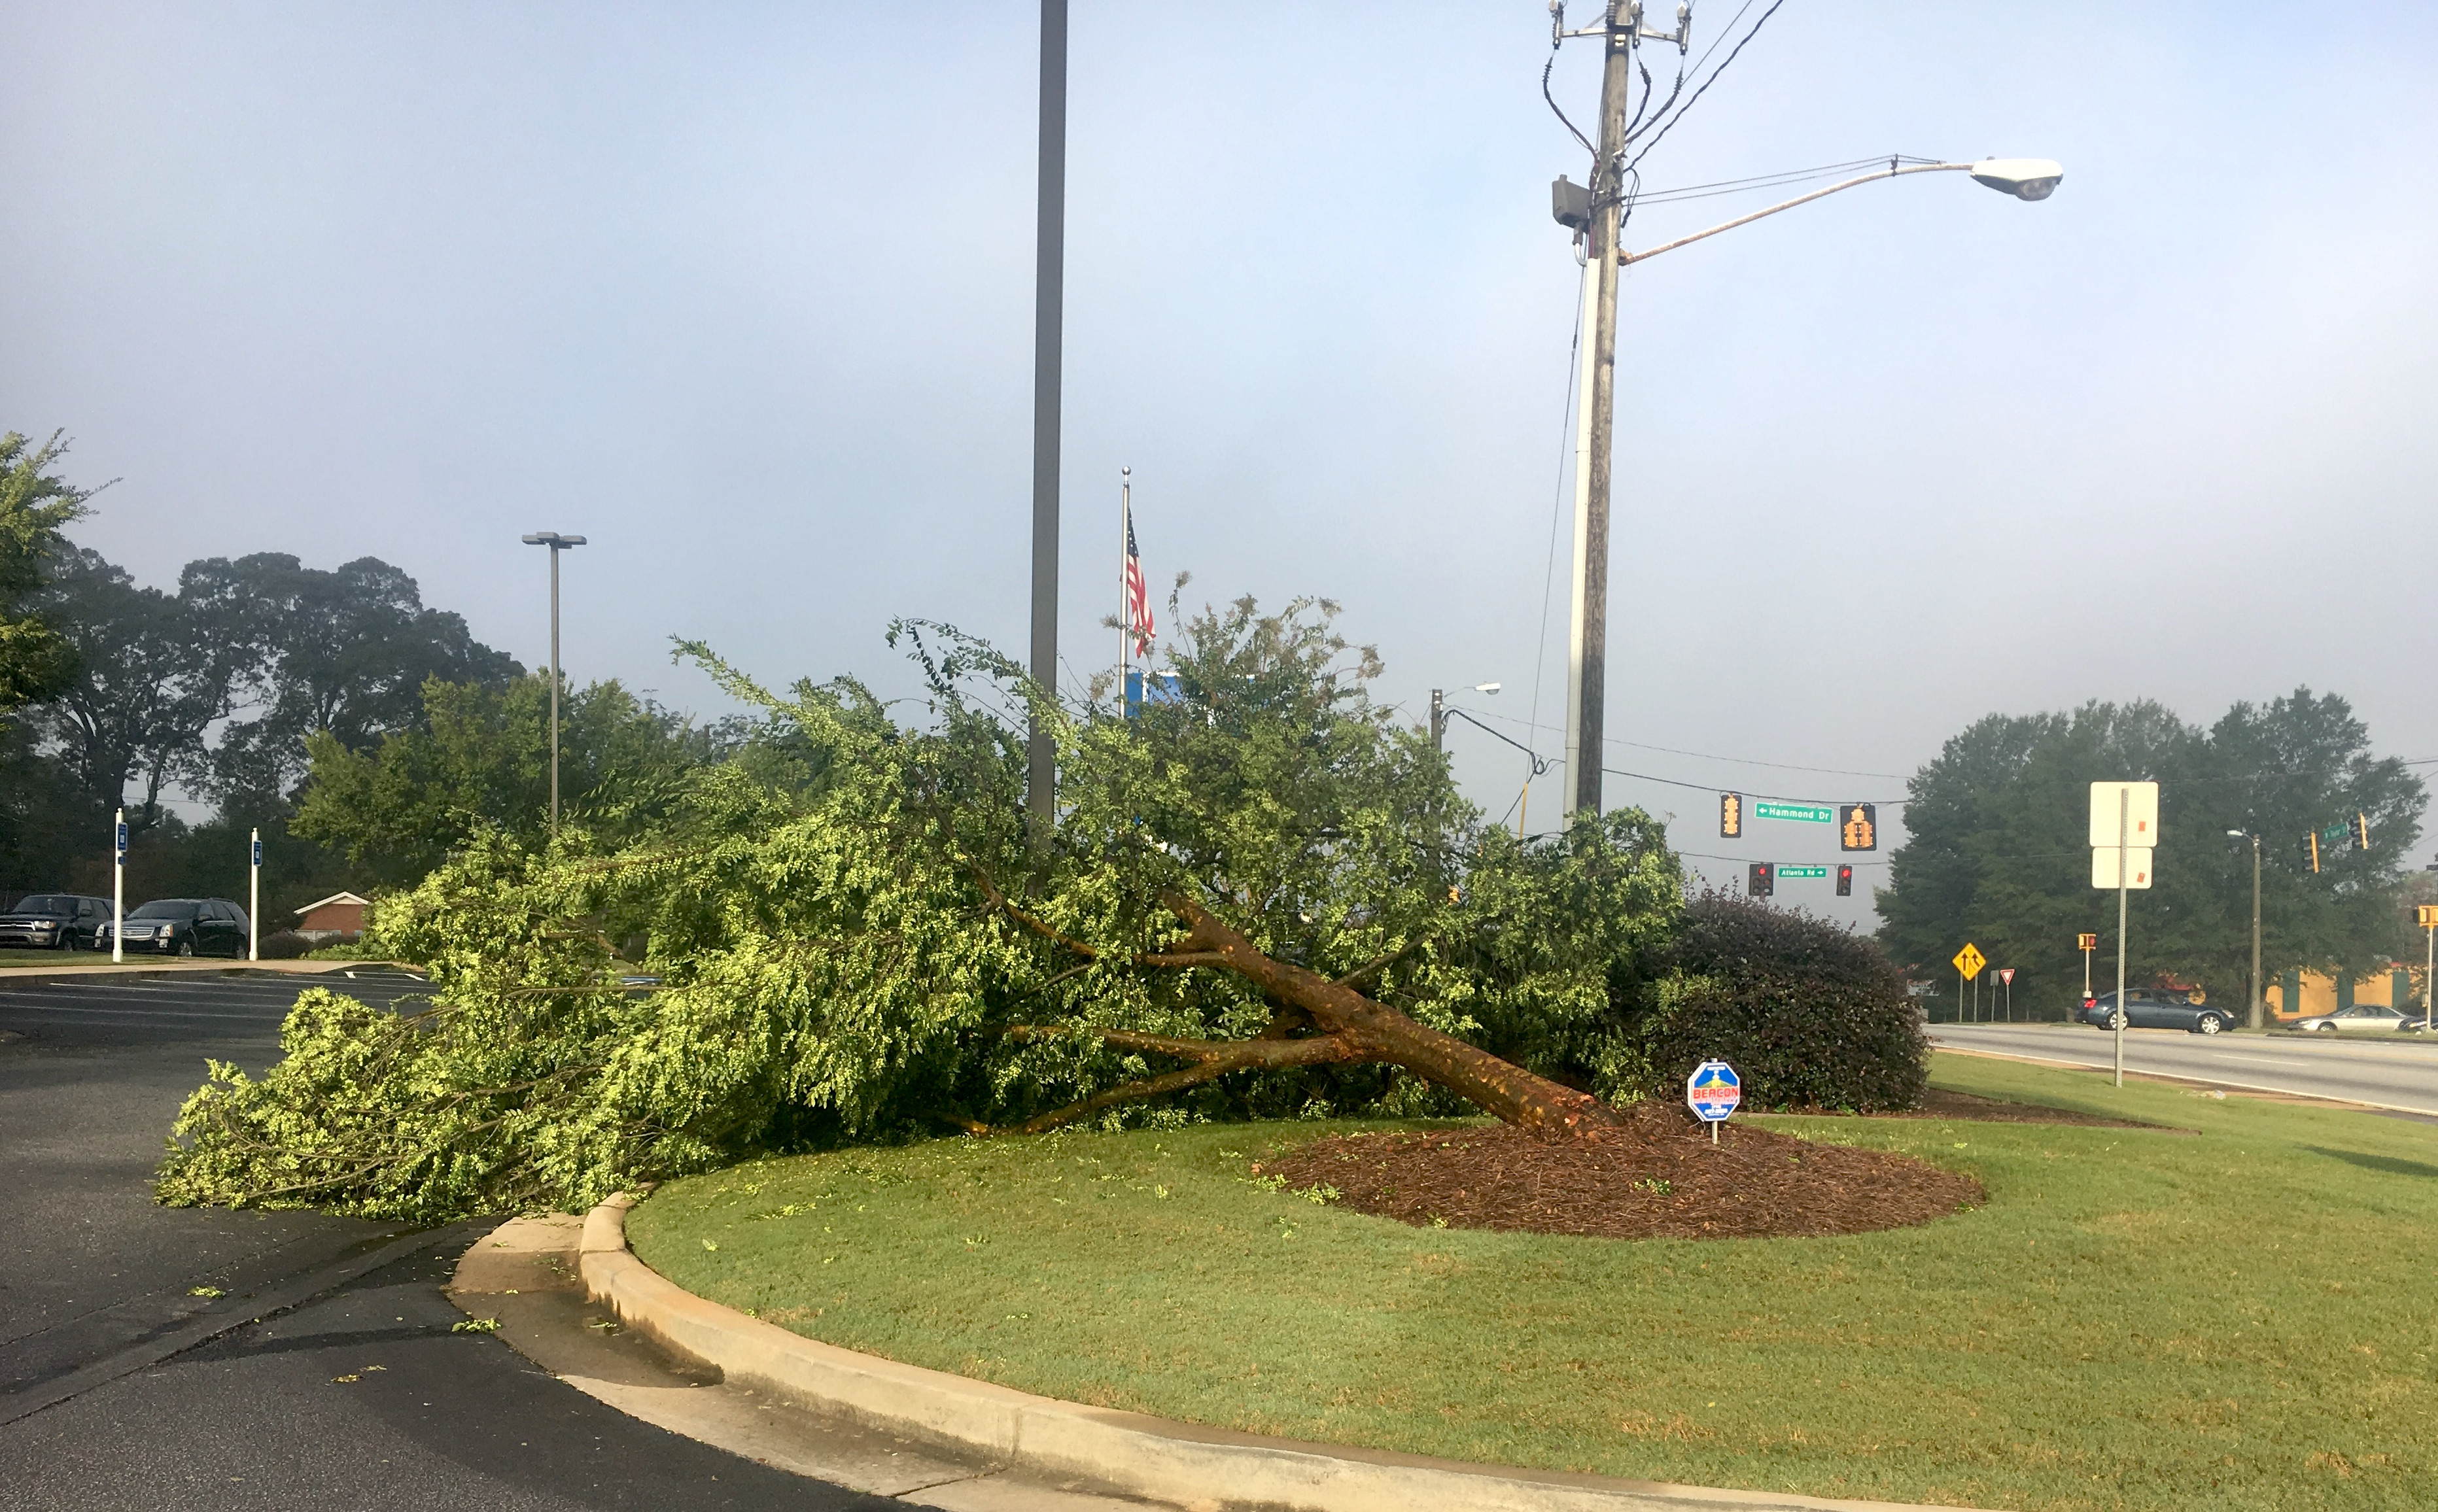 Winds from Tropical Storm Irma uprooted a tree on the lawn of the United Bank in Griffin, Georgia.